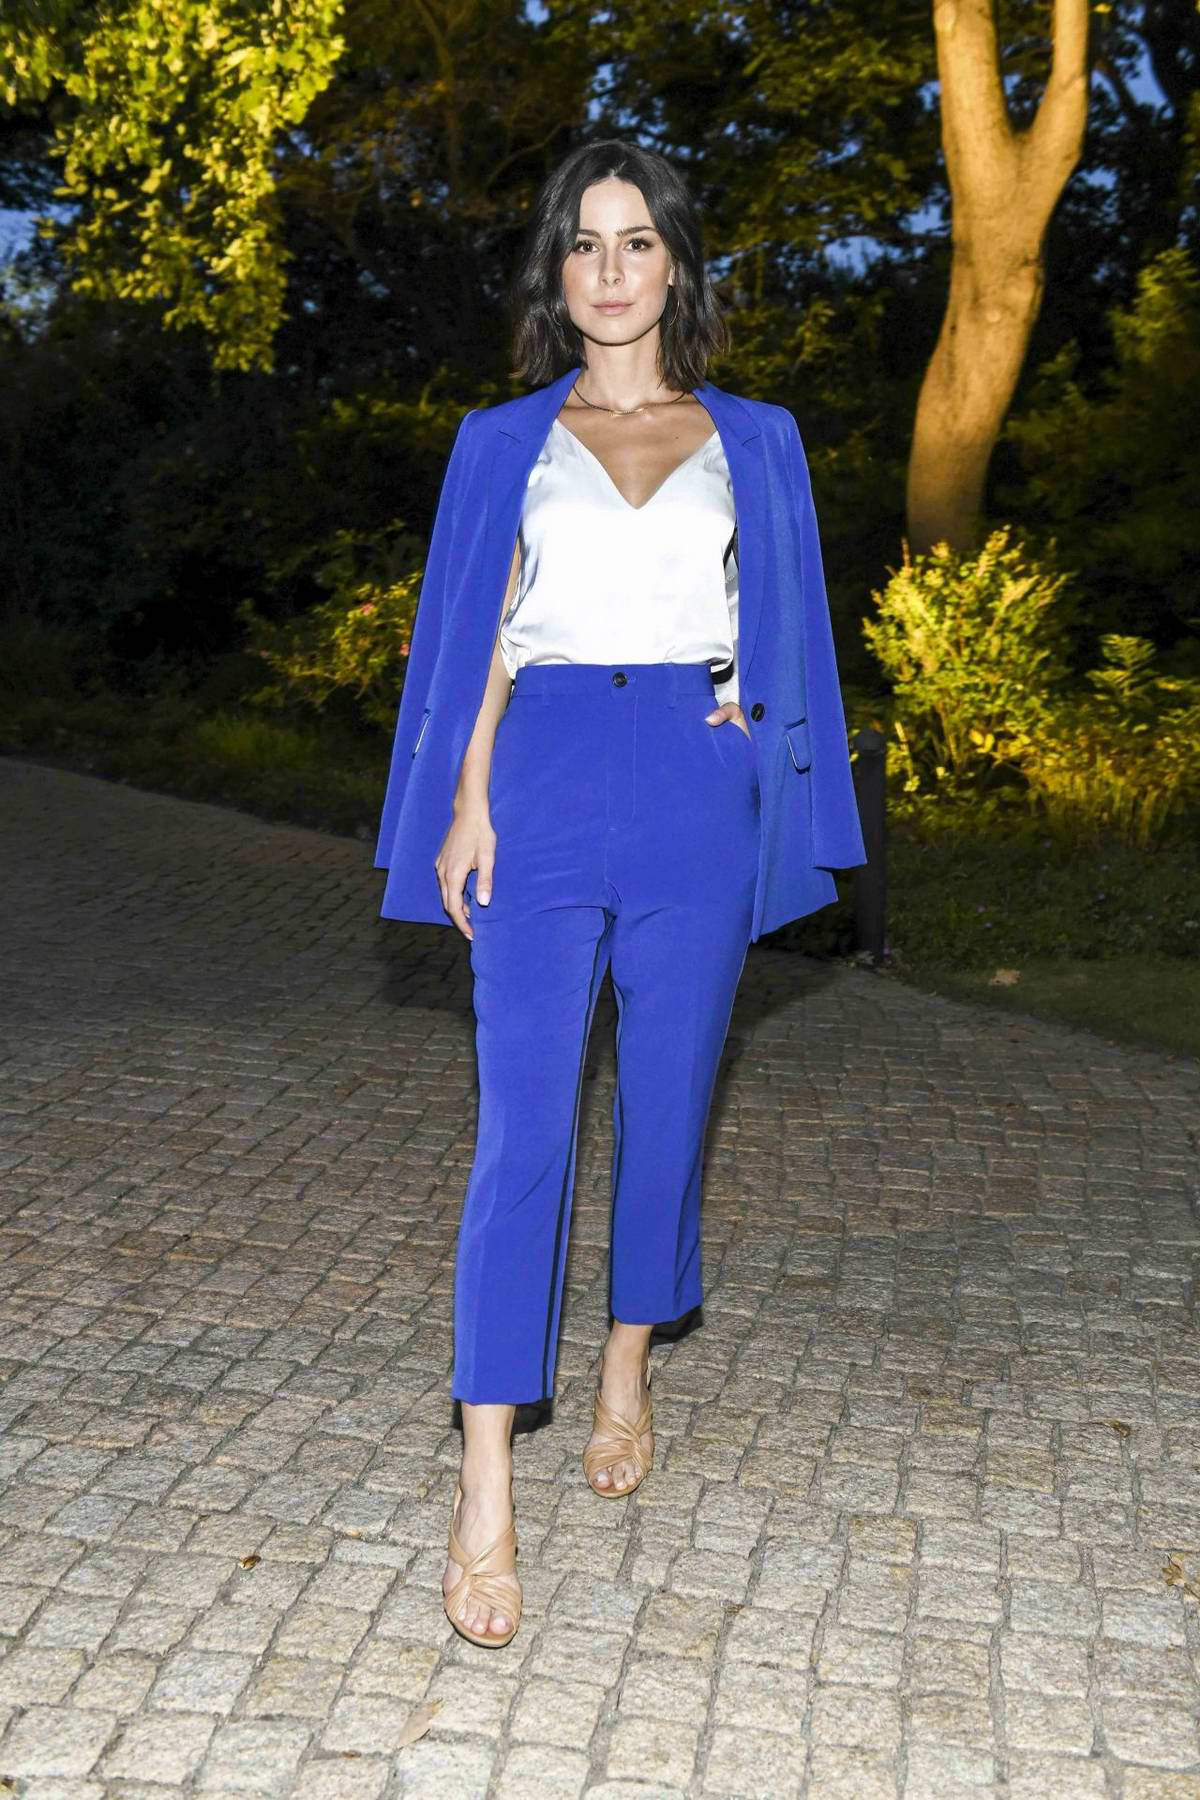 Lena Meyer-Landrut attends Citizens' Party of the Federal President at Schloss Bellevue in Berlin, Germany